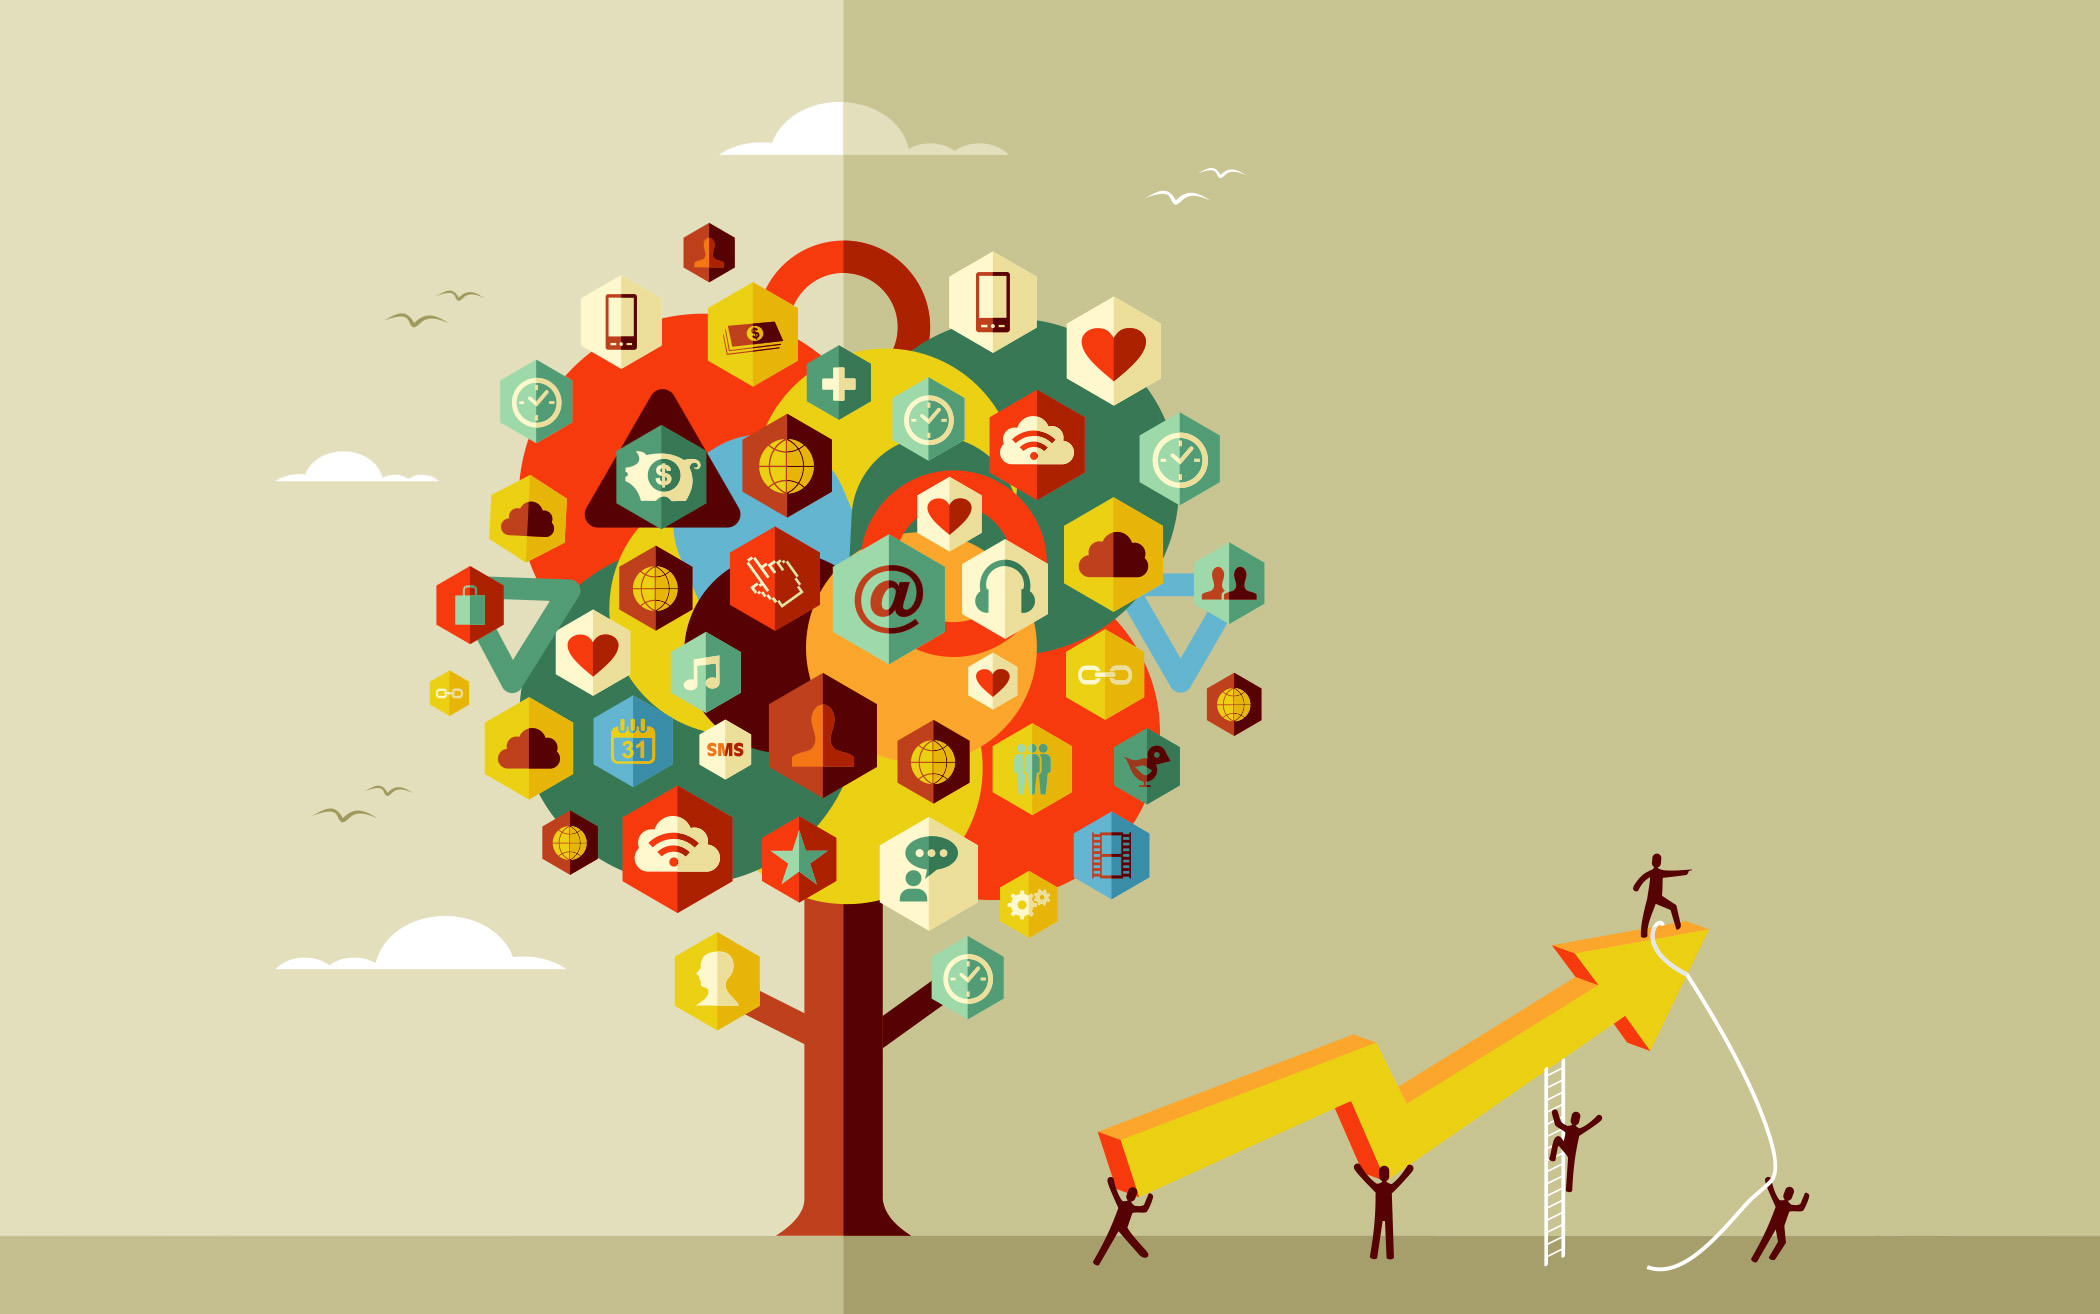 Engaging Marketing App Ideas for Mobile - How Businesses Promoting